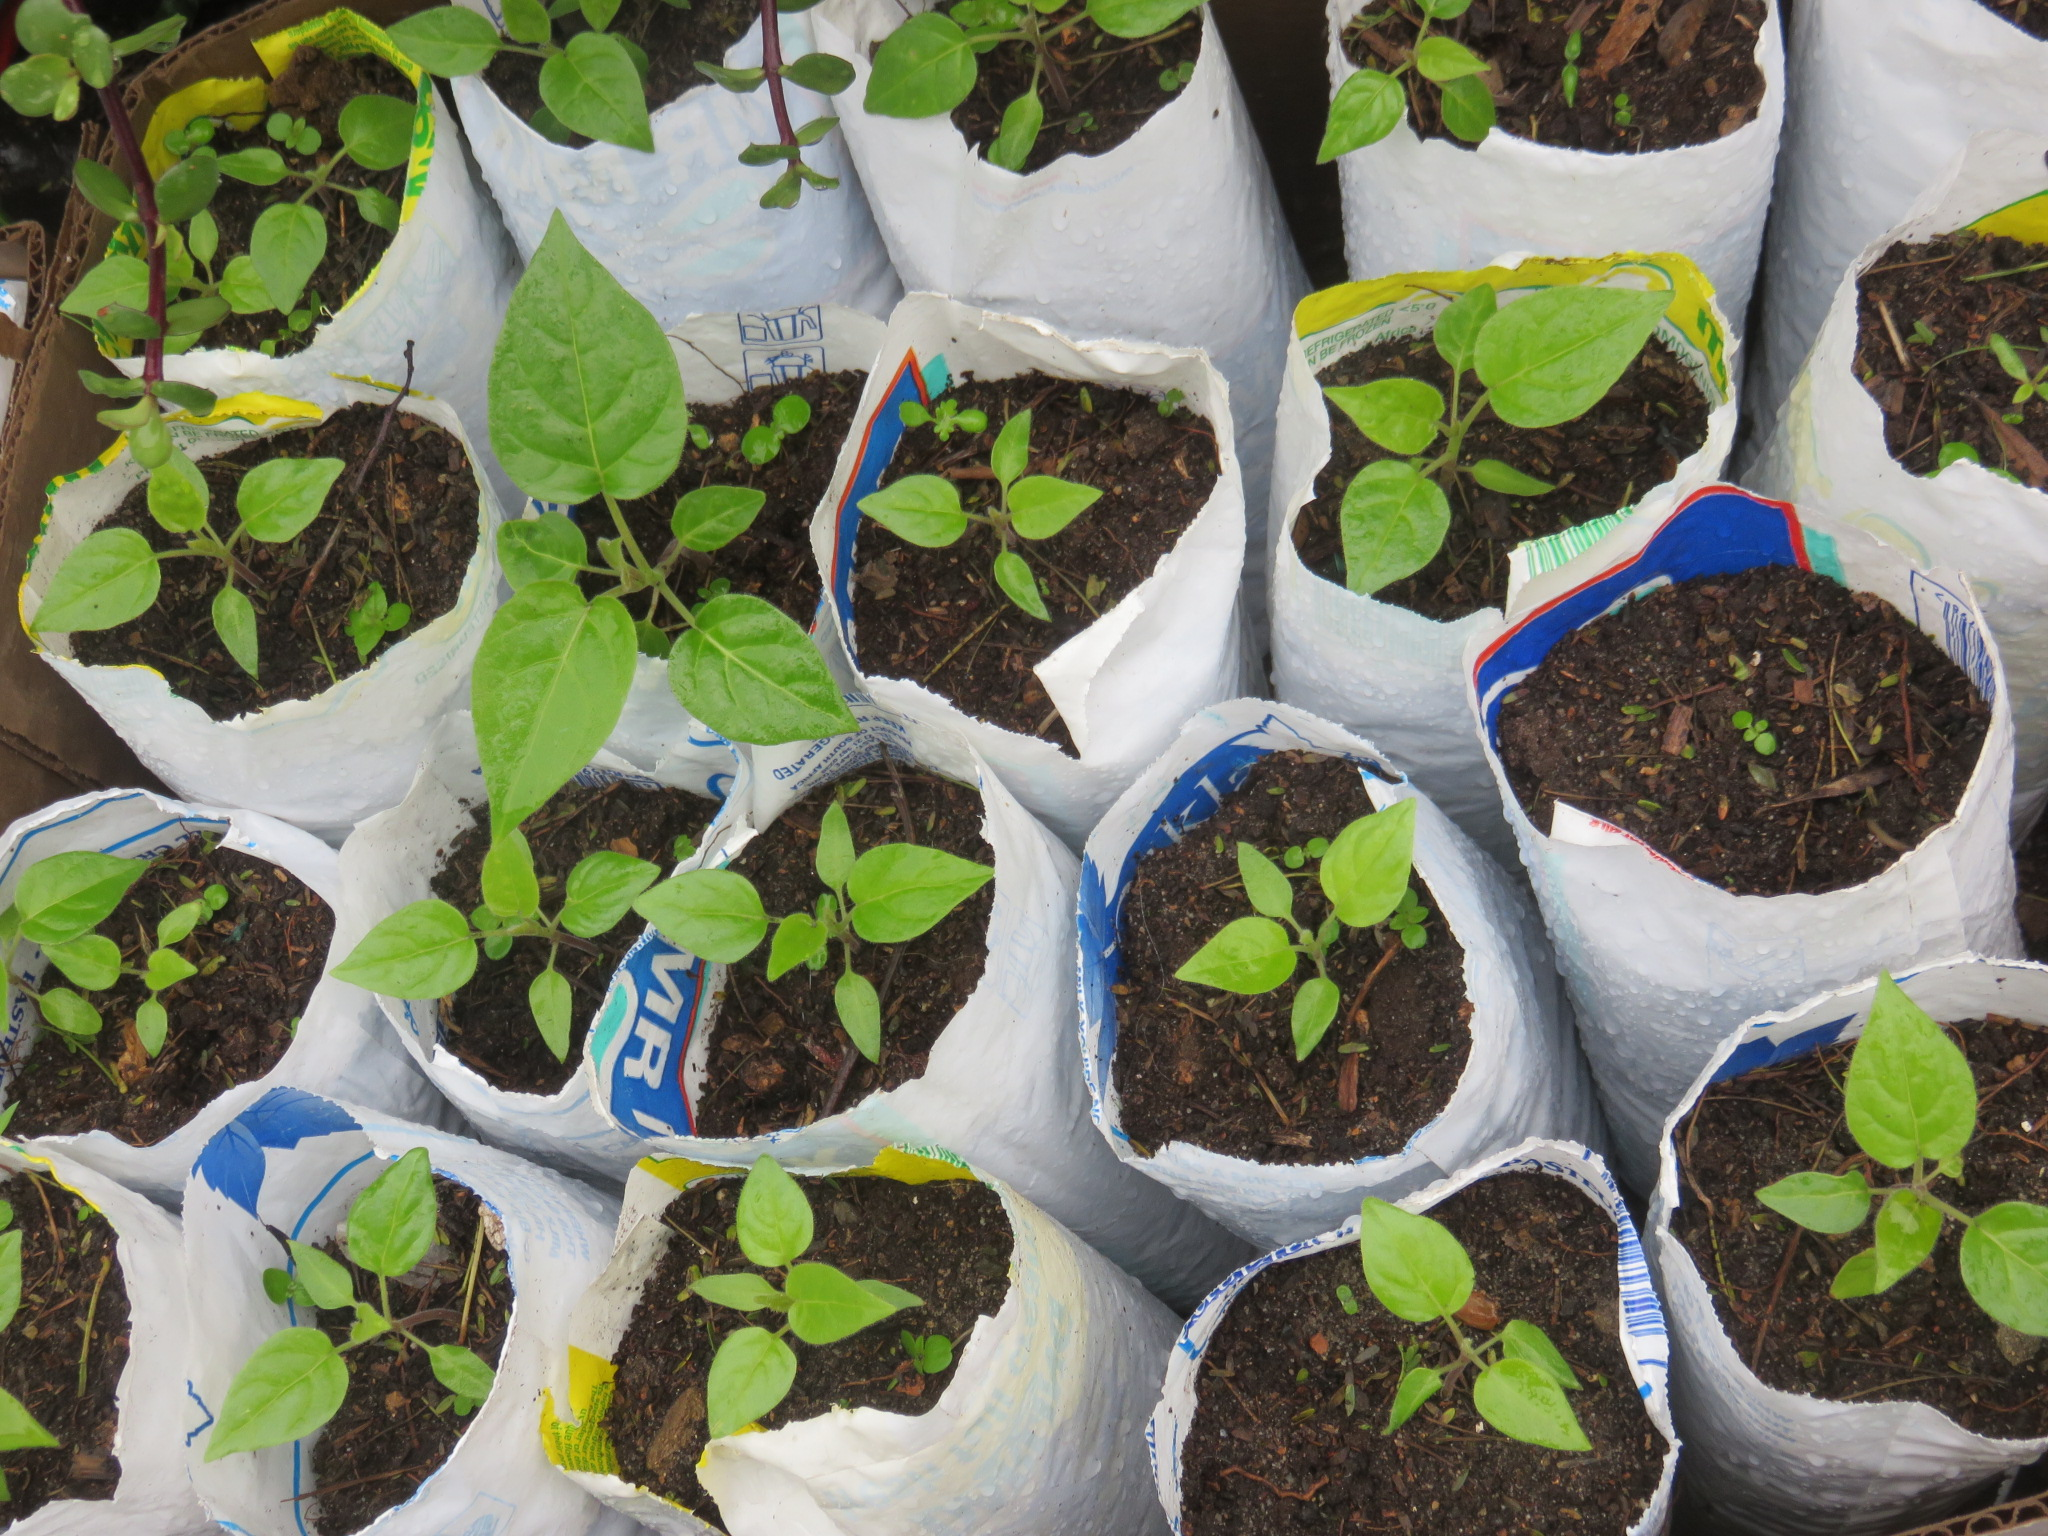 The next stage was to plant the seedlings individually in recycled milk bags. After this they were planted out in the garden.